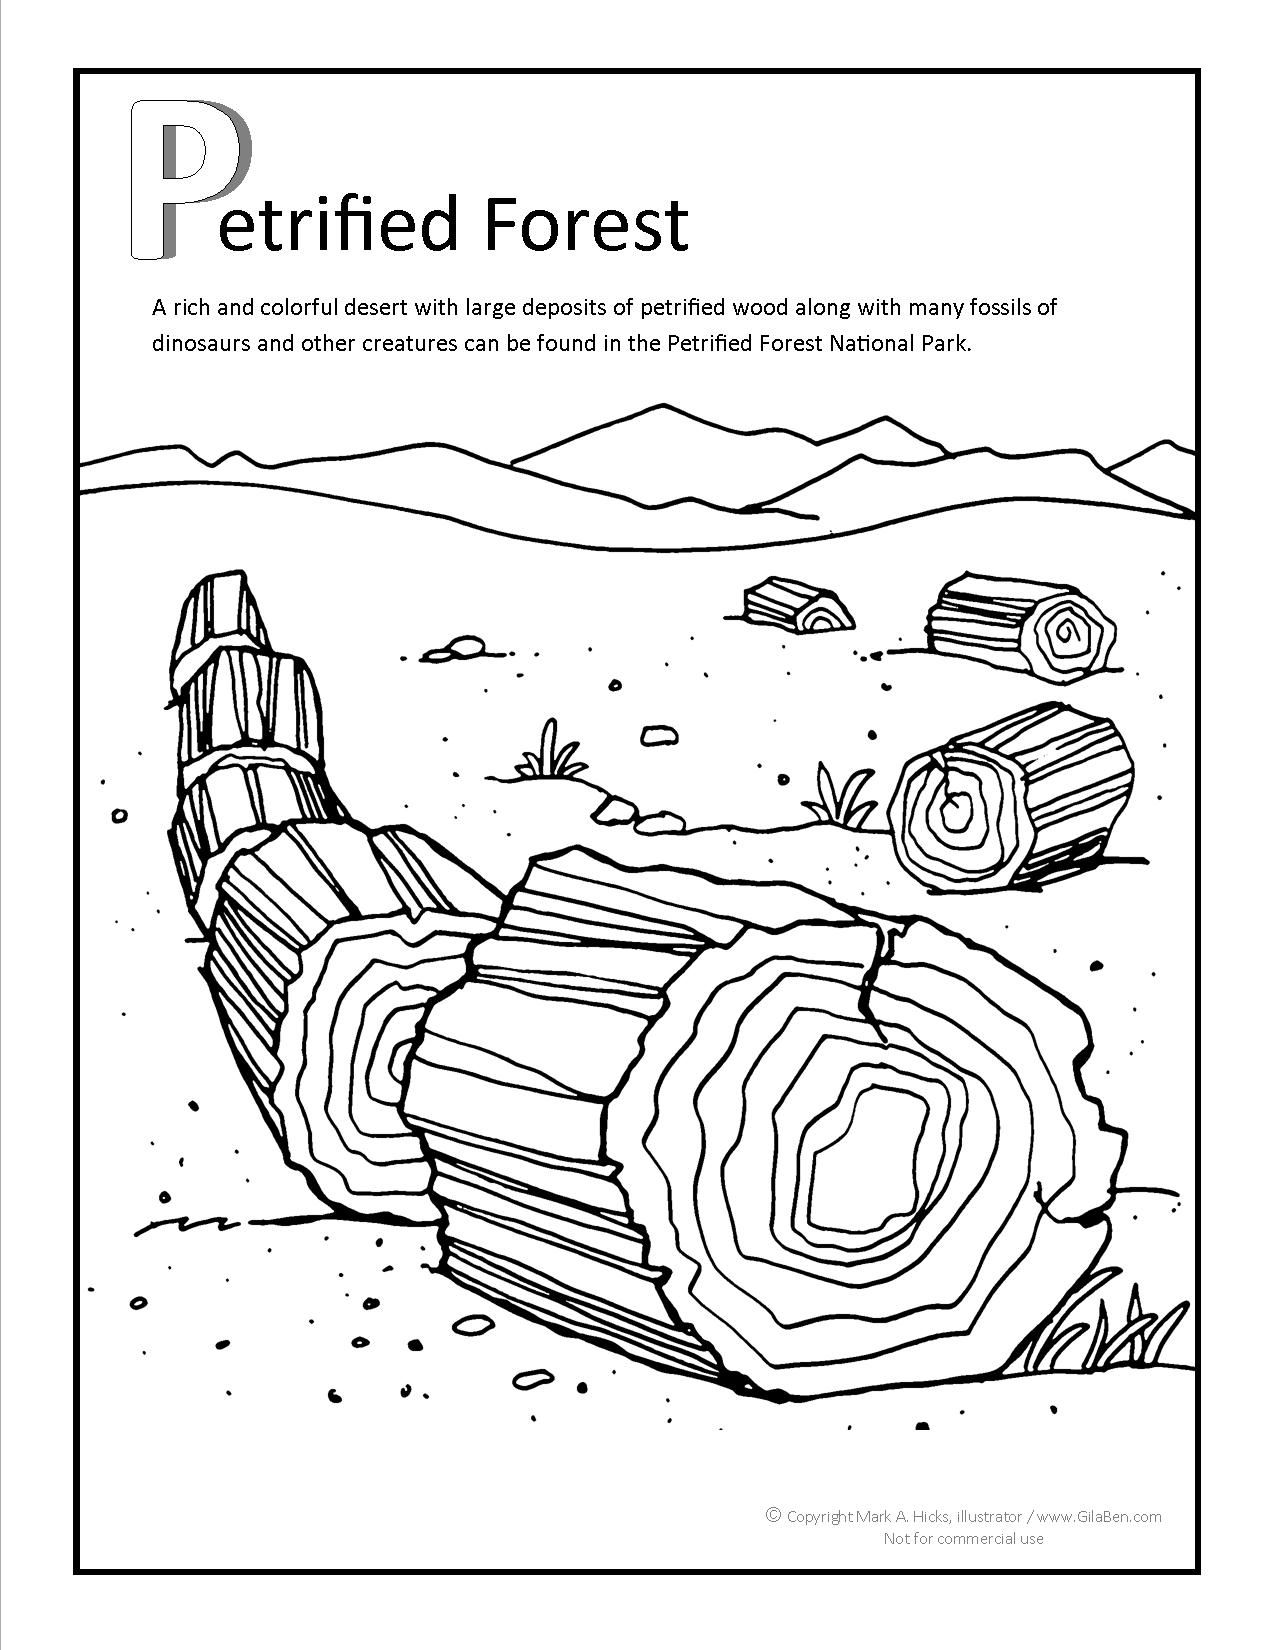 Petrified Forest Coloring page. More fun printable